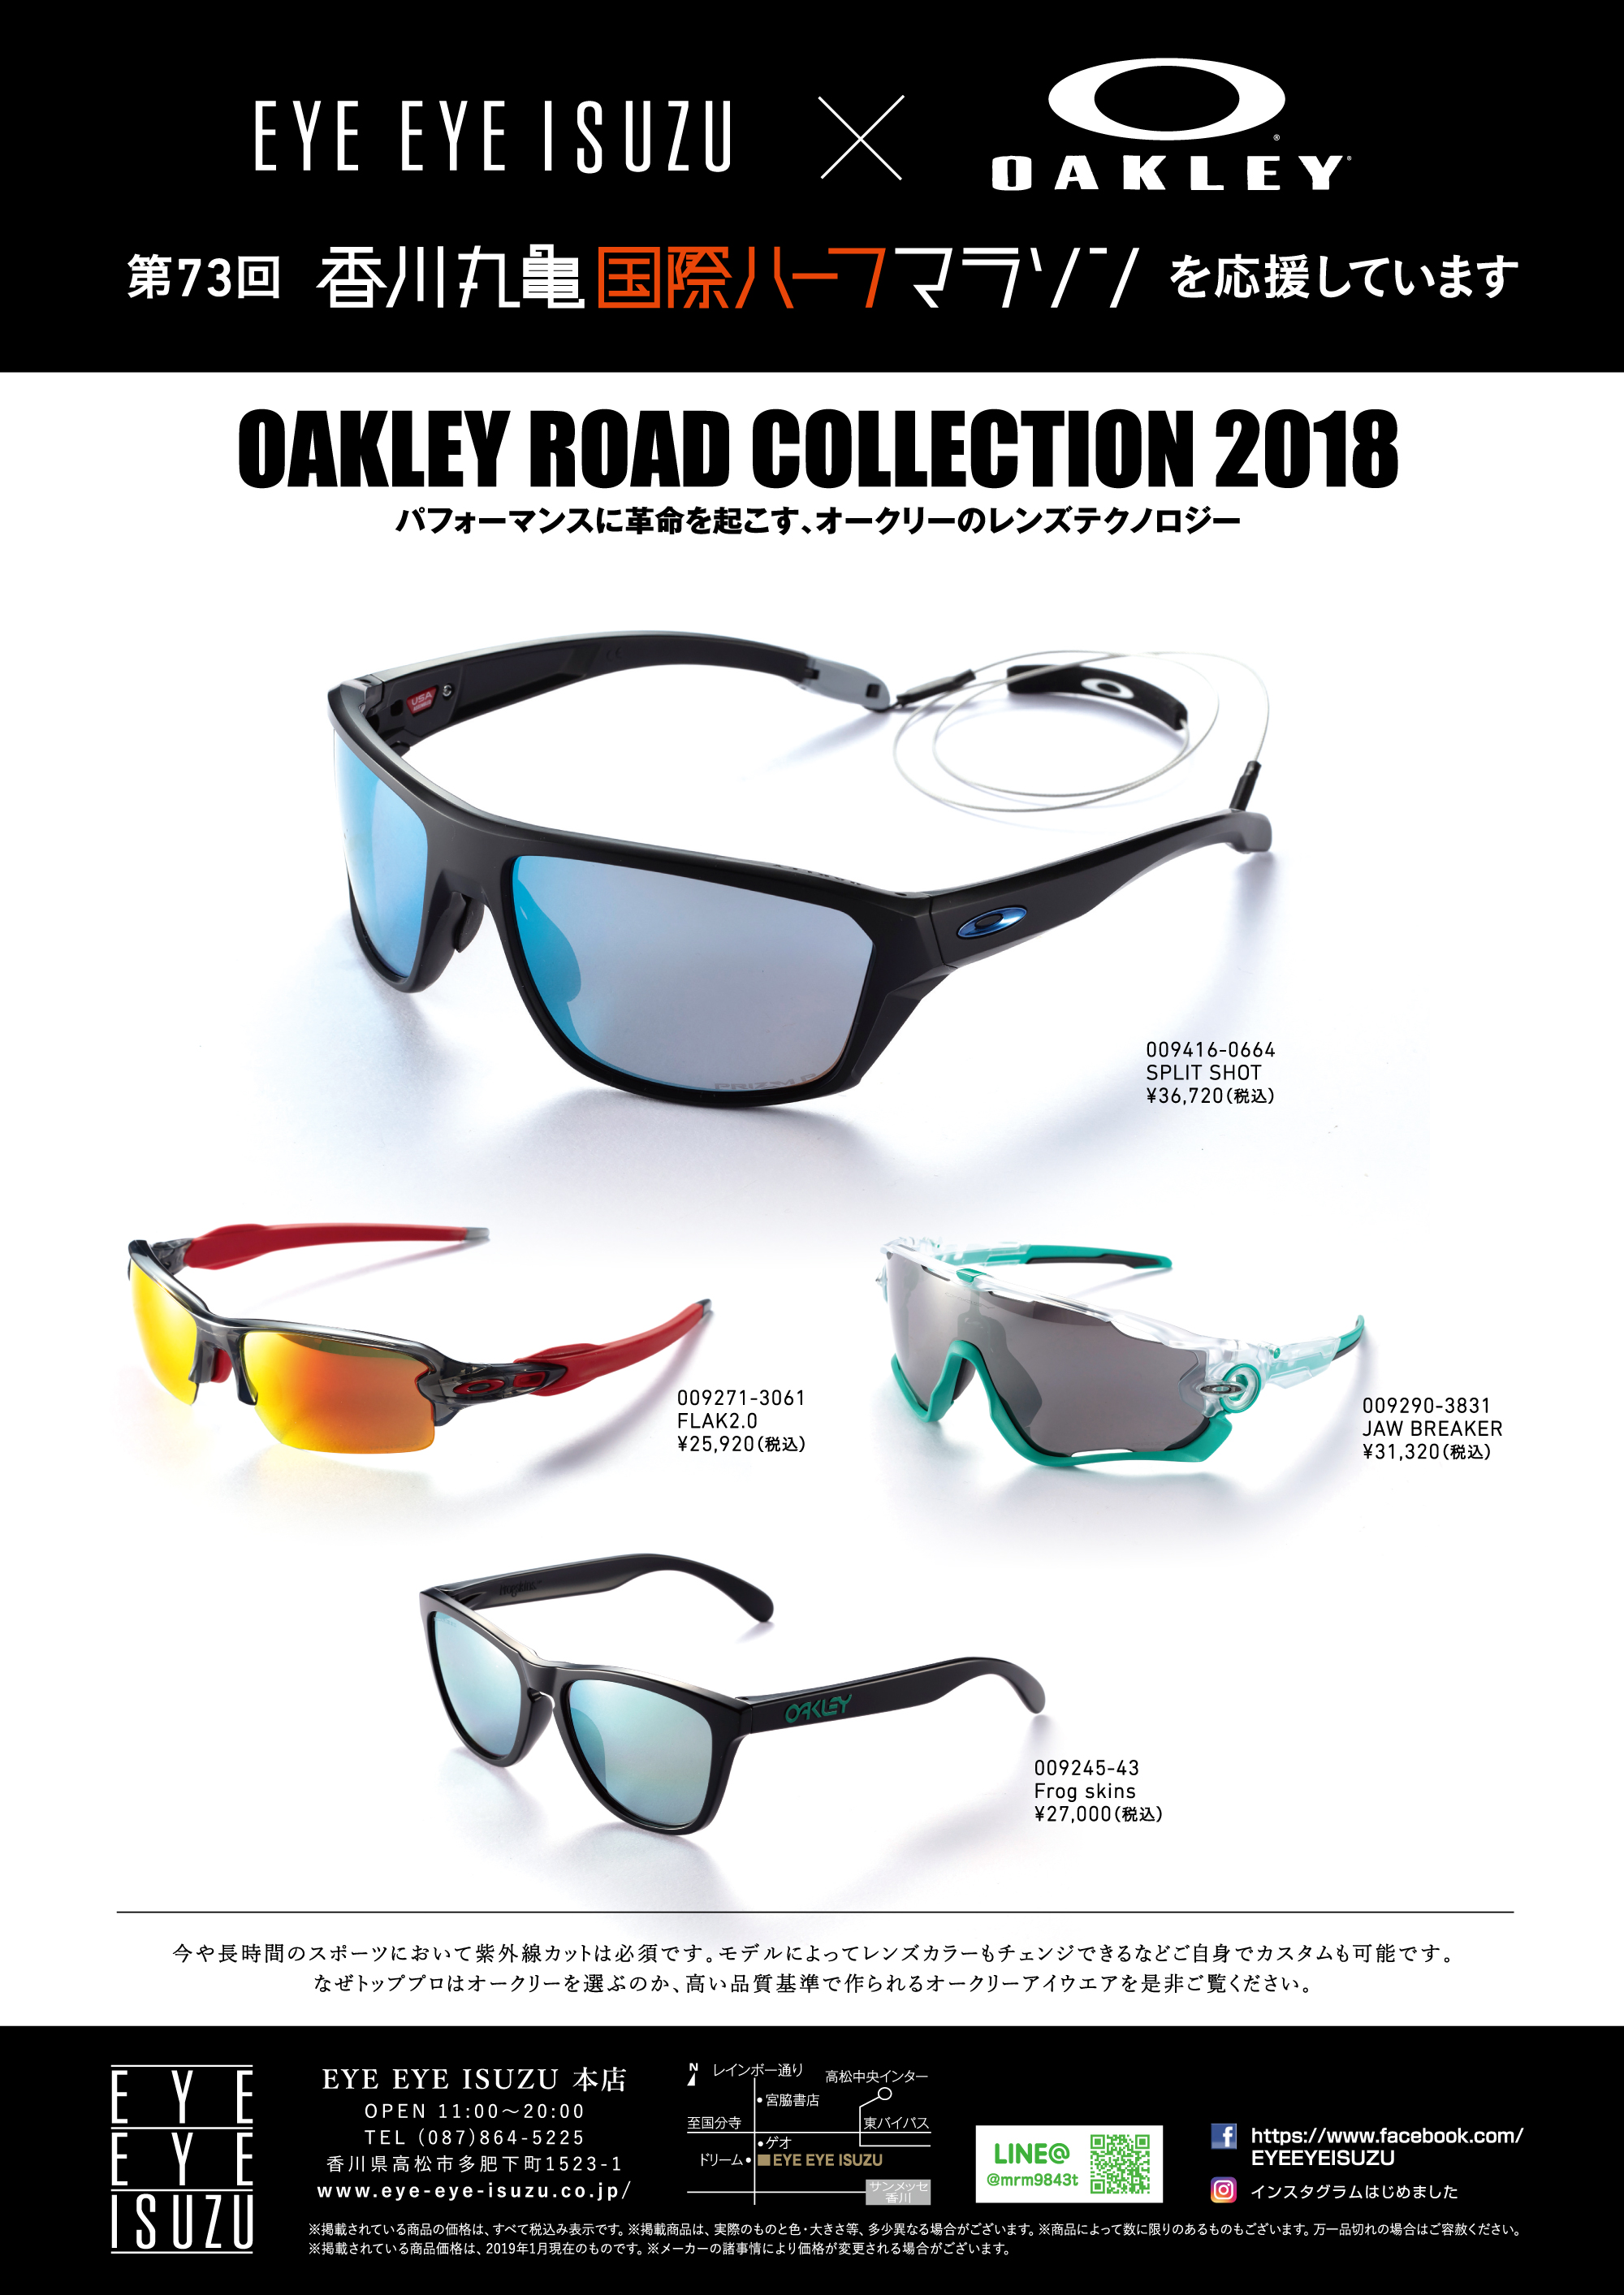 OAKLEY ROAD COLLECTION